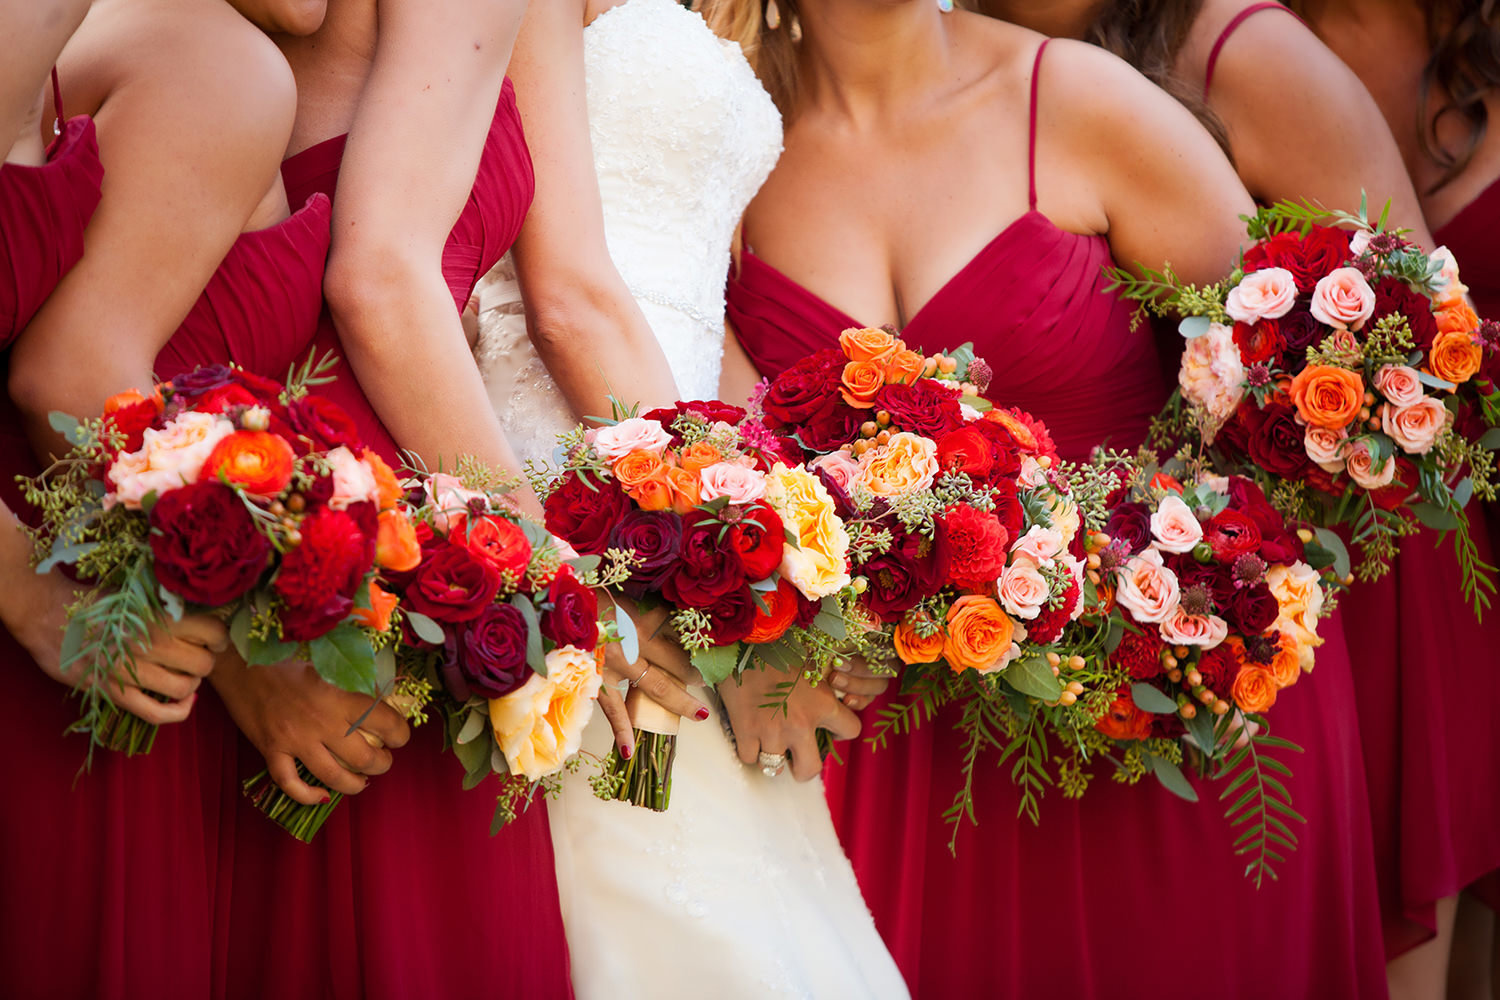 Brightly colored wedding bouquets and dresses